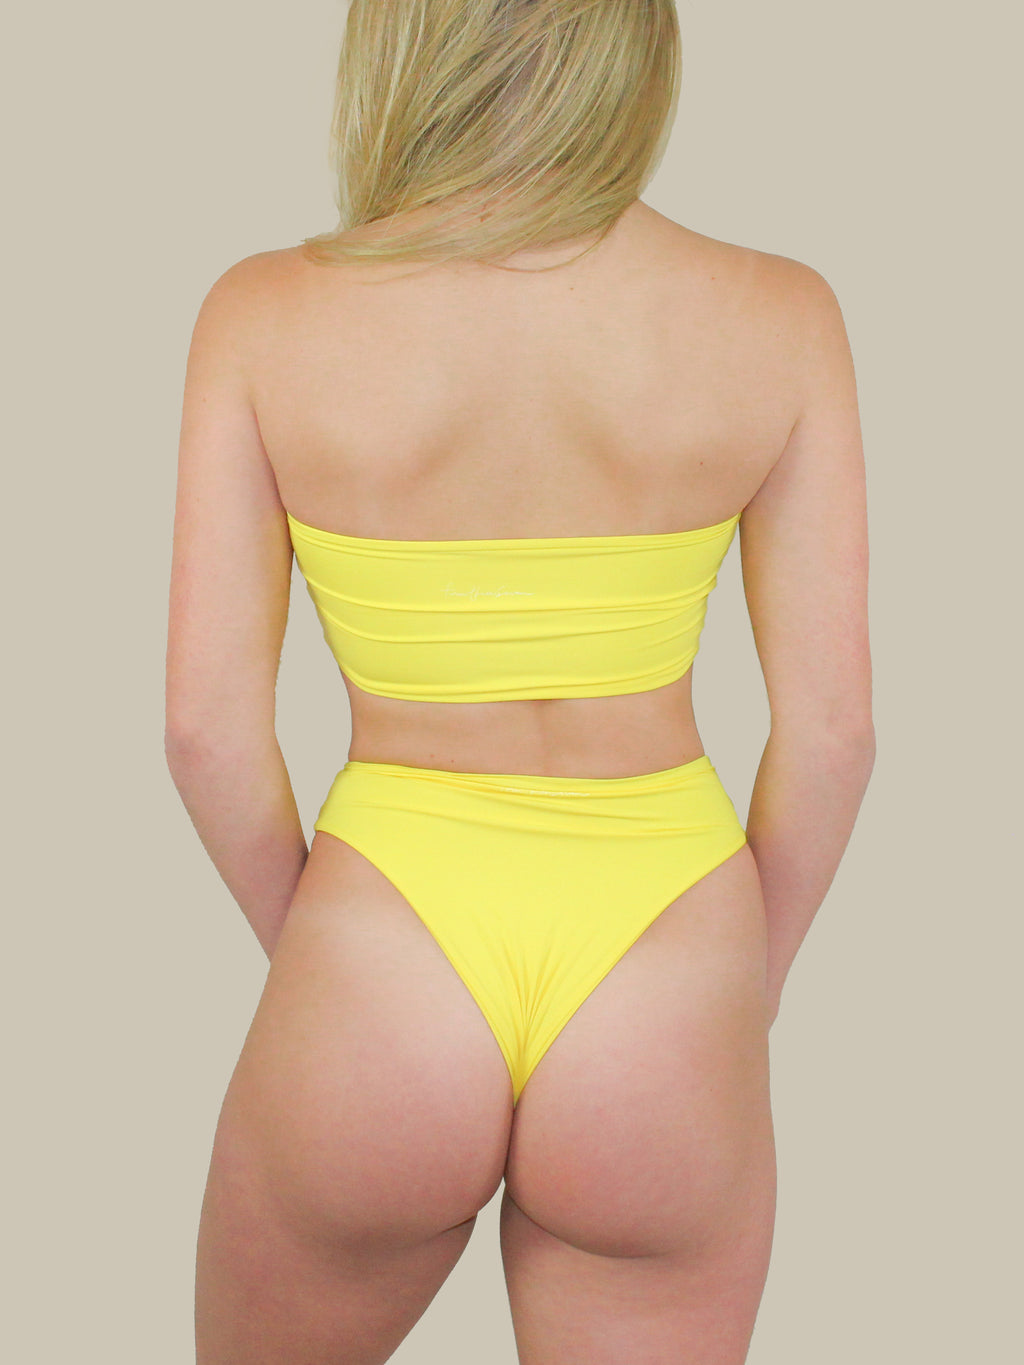 The Aubrey Bottoms in Yellow have a high-waisted fit with a high leg cut. These bottoms also have double layer fabric and bright yellow color.